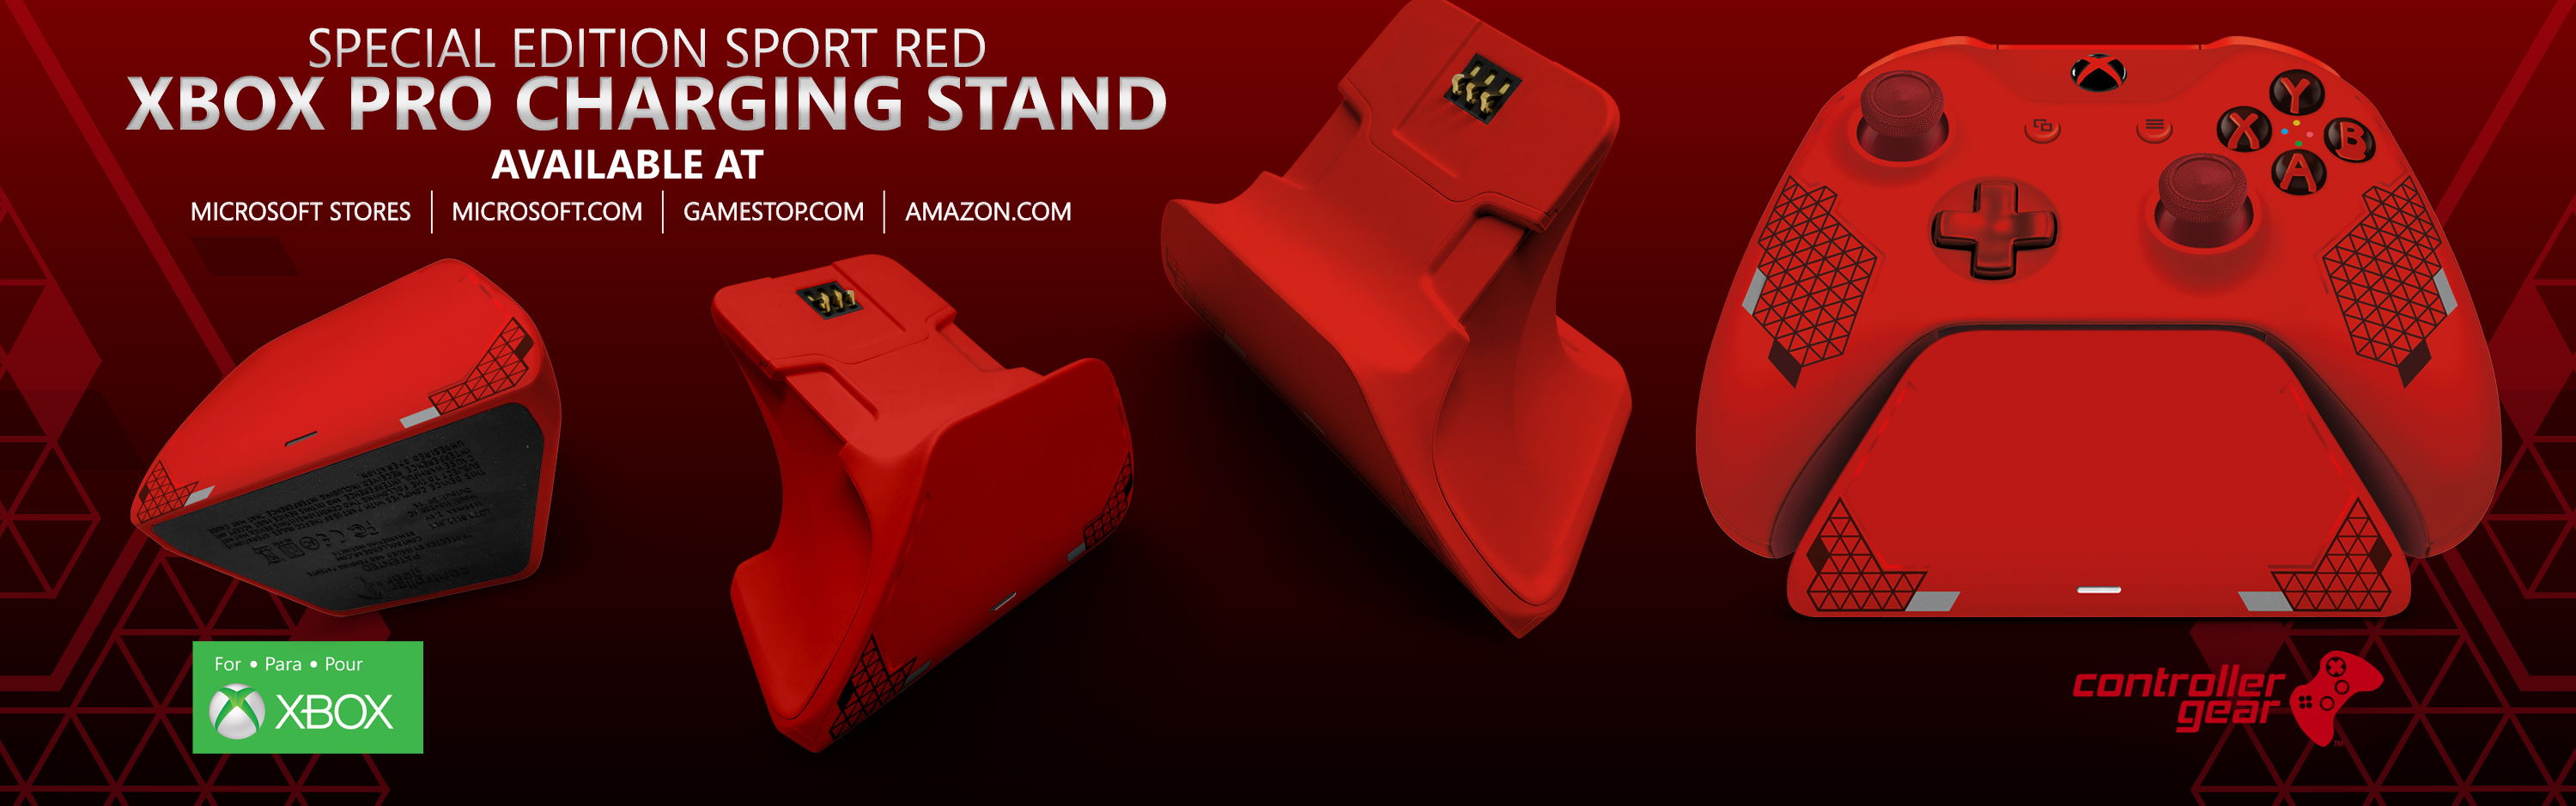 Sport Red Xbox Pro Charging Stand - Pre-Order Now!